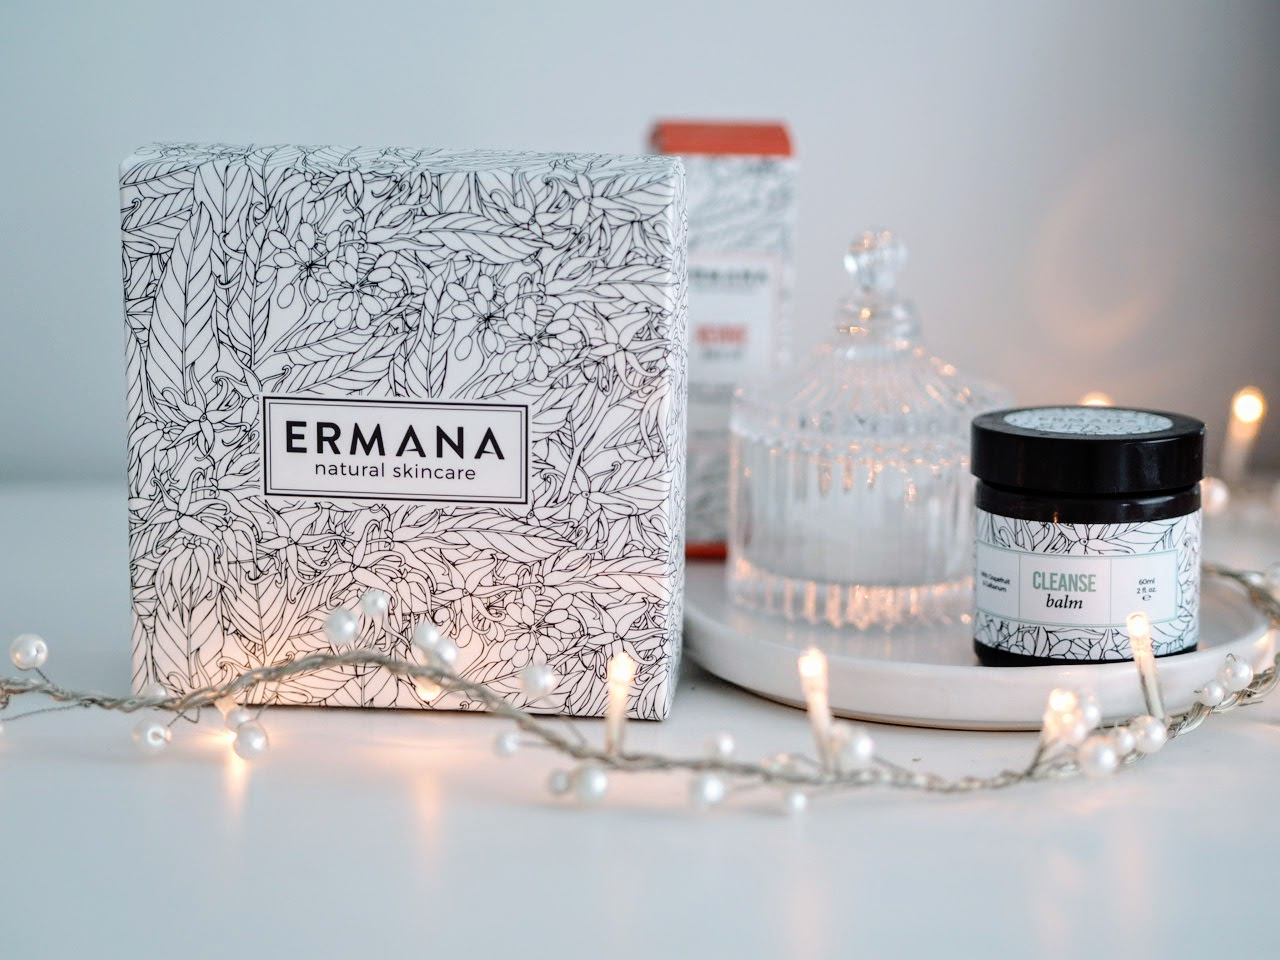 Ermana Skincare Review | A kinder skincare brand for sensitive skin | The Halcyon Years